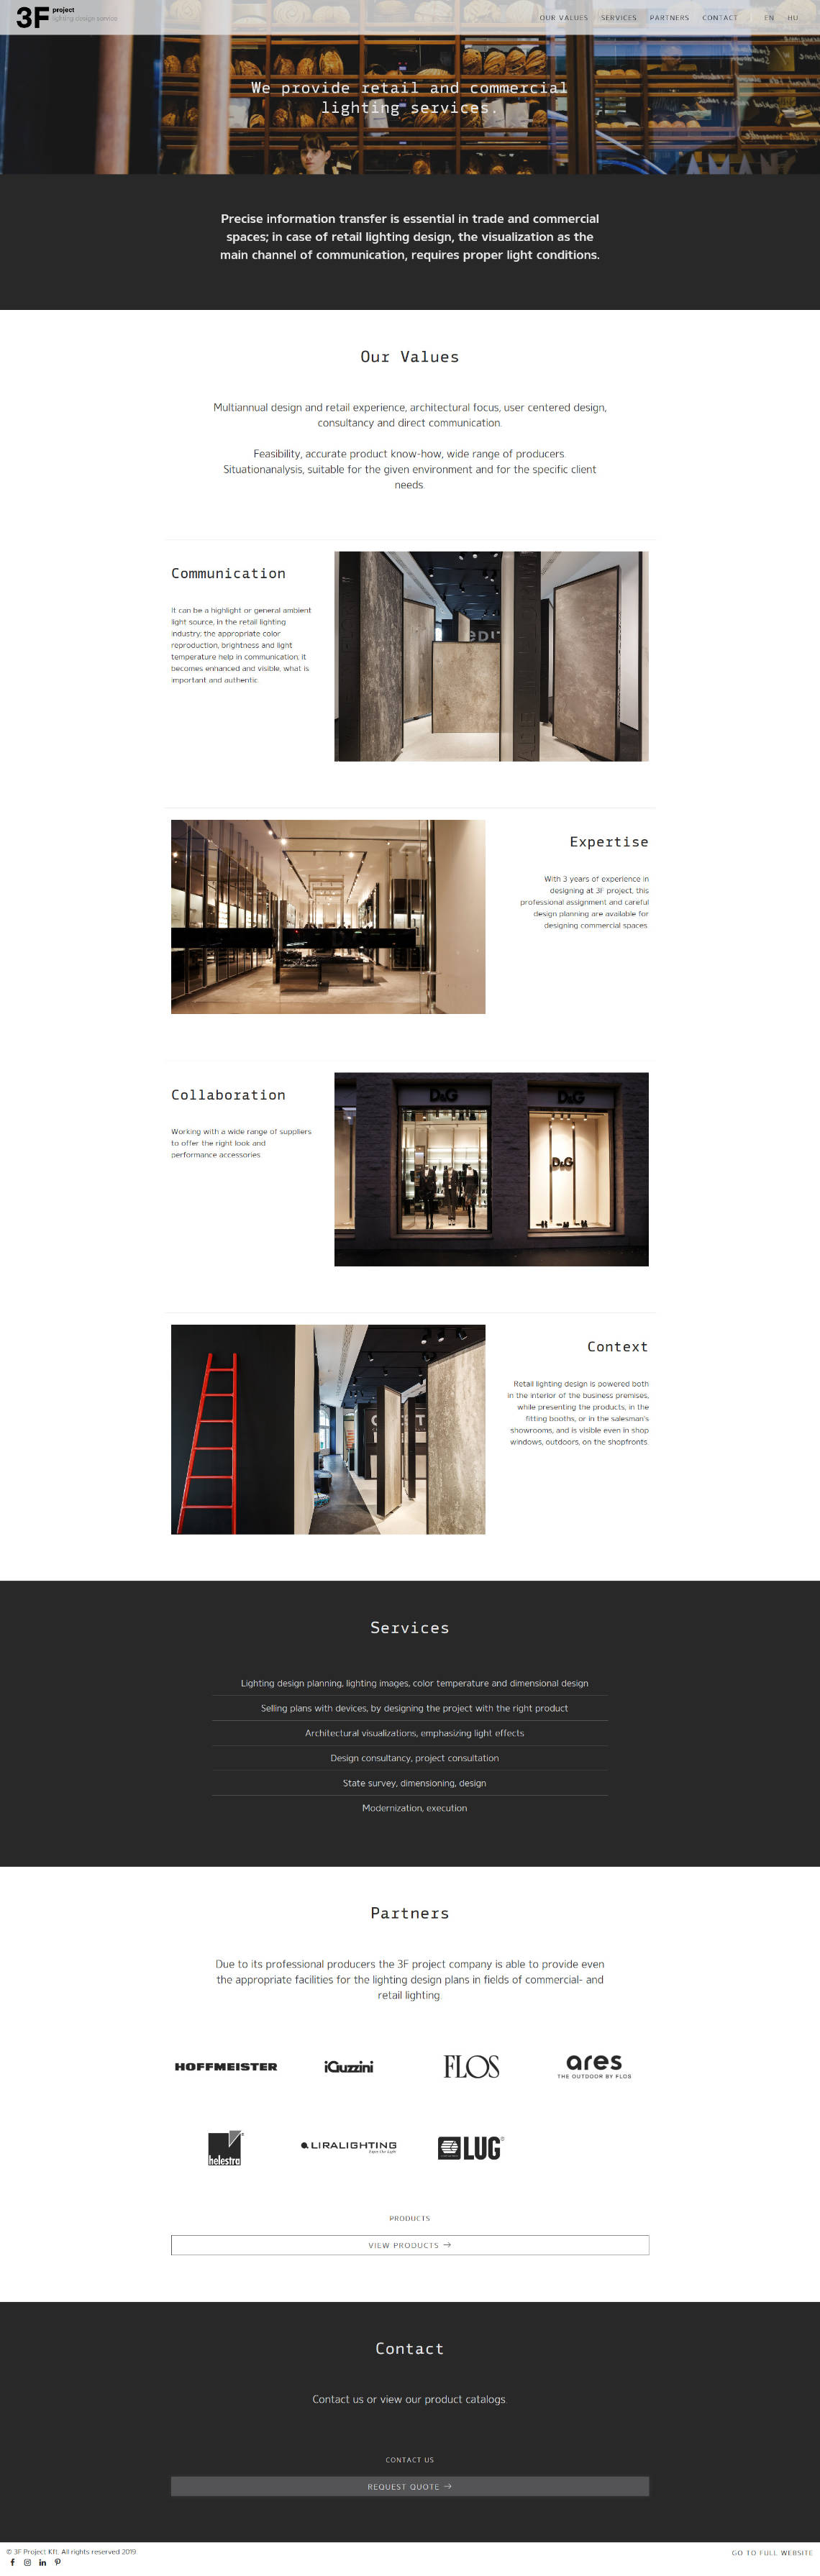 Landing page design, and bespoke WordPress website building for 3F Project's retail lighting service home page screen